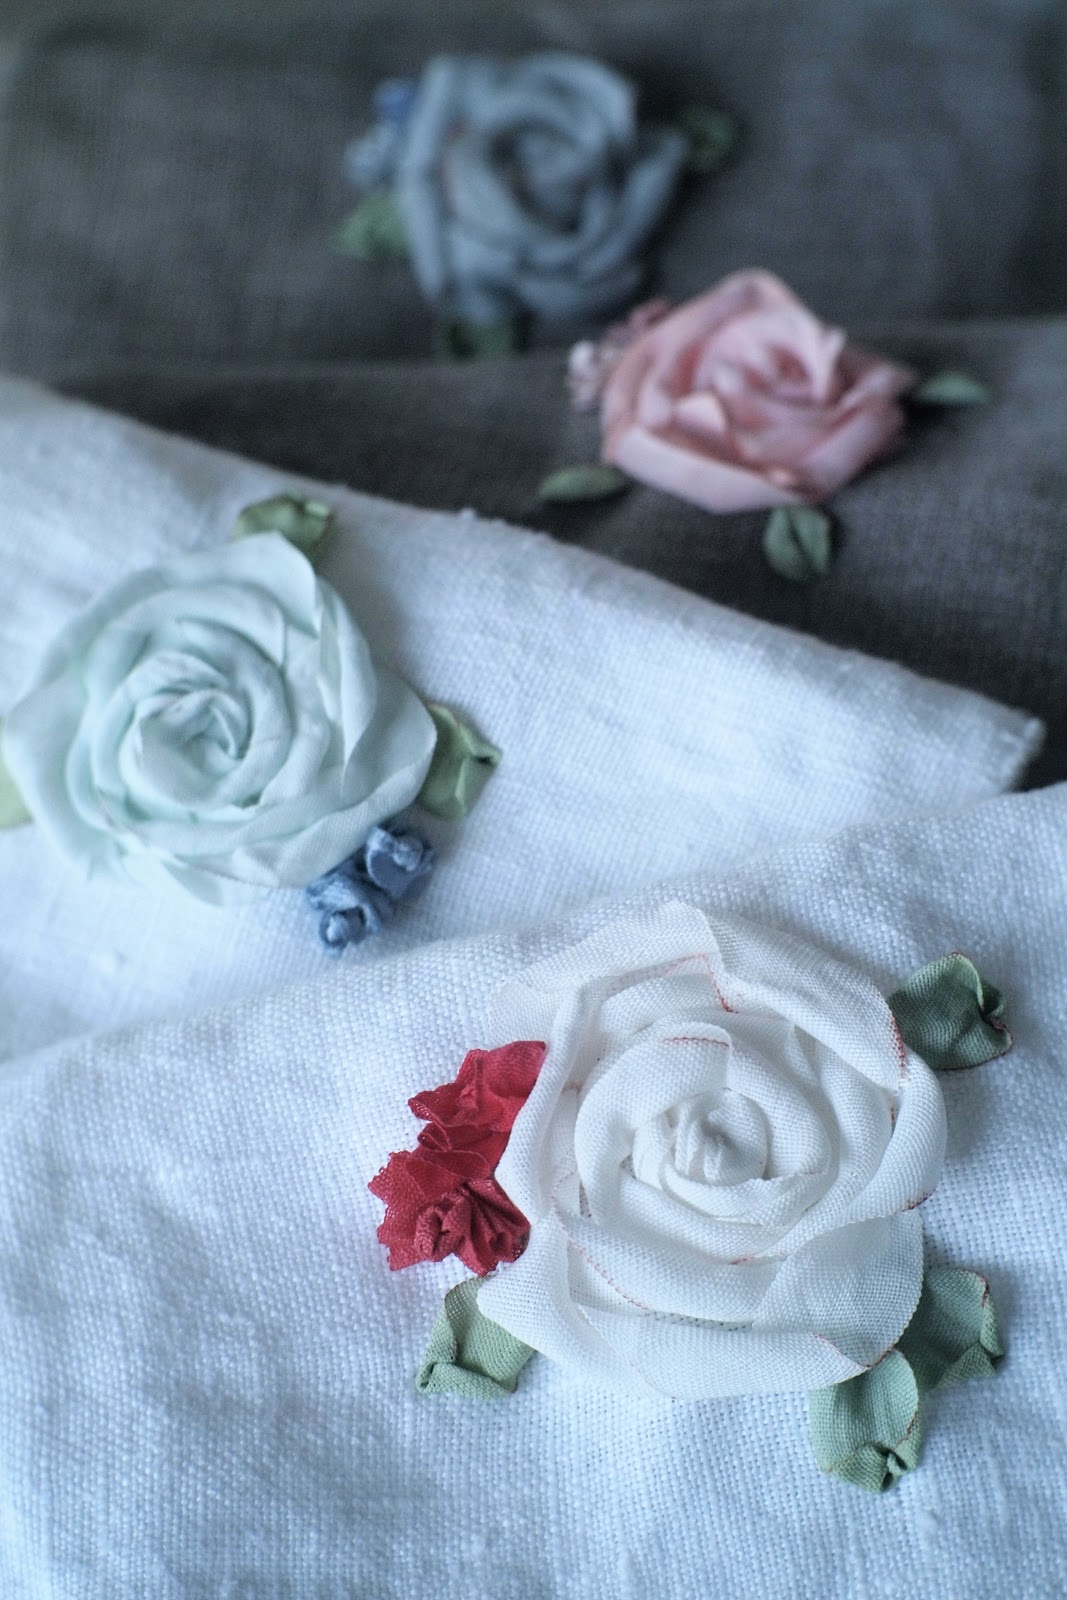 When decorating silk ribbon embroidery